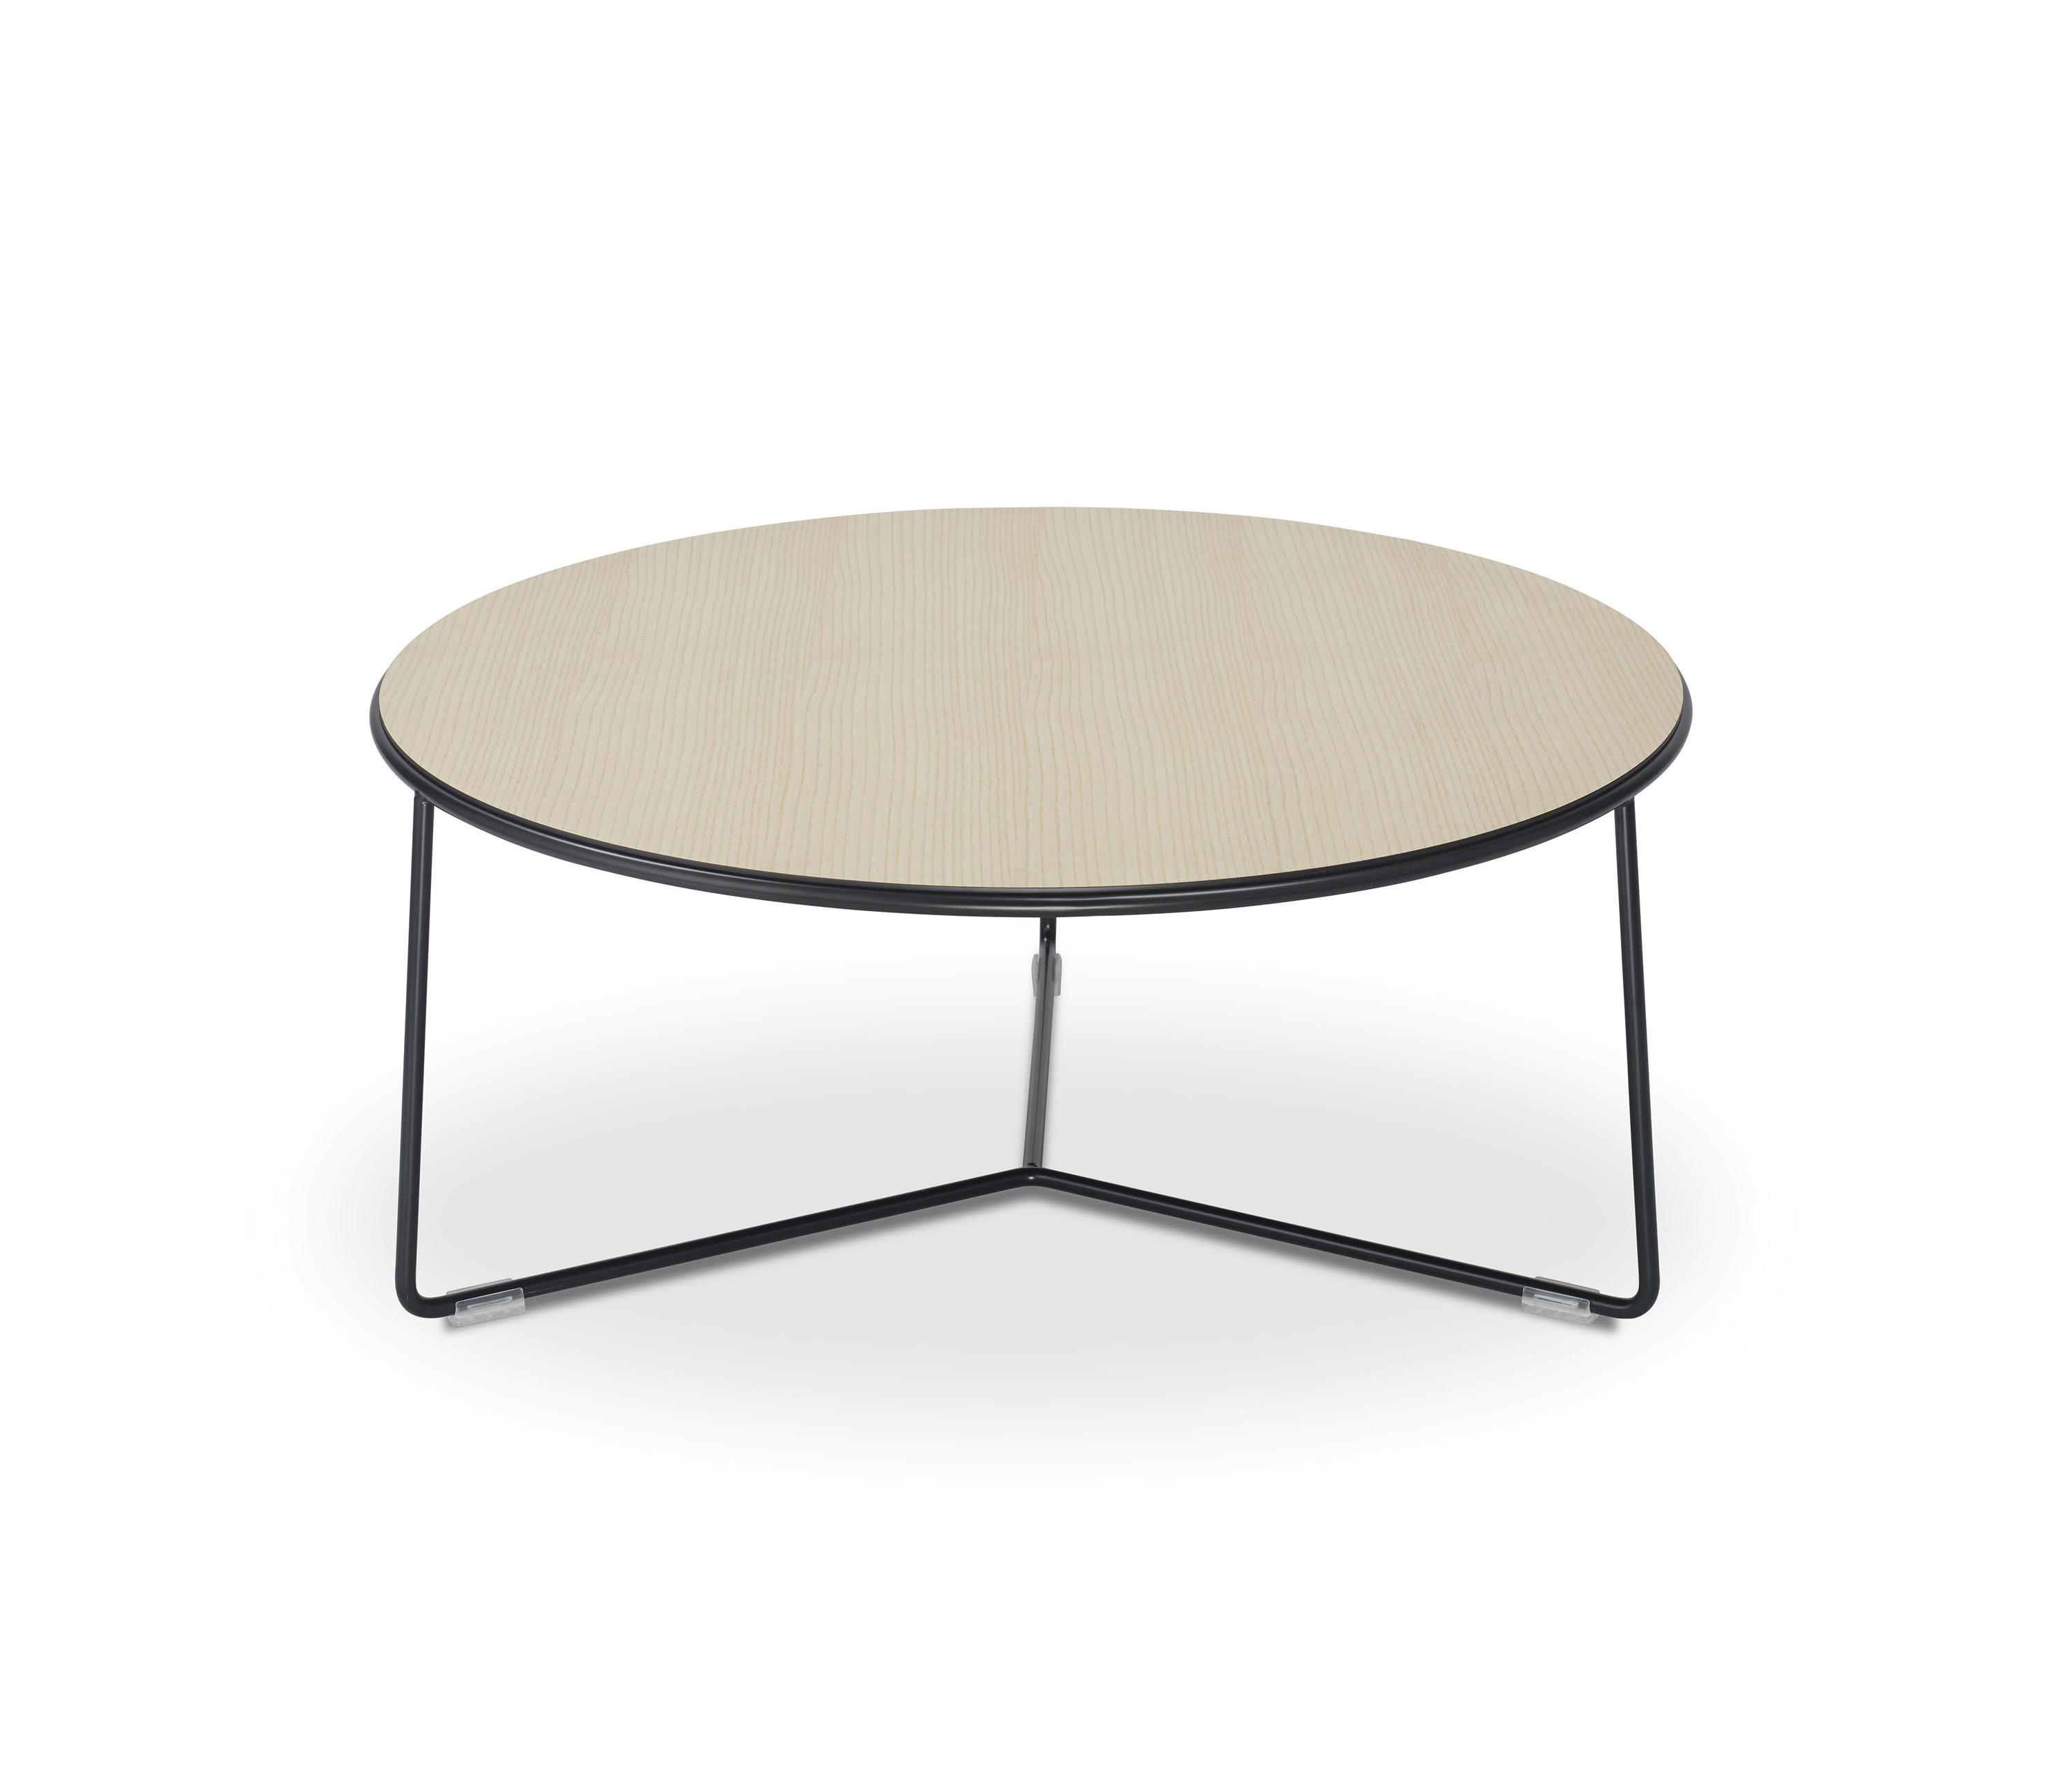 table basse lotus table basse with table basse lotus elegant franck evennou sige lotus with. Black Bedroom Furniture Sets. Home Design Ideas